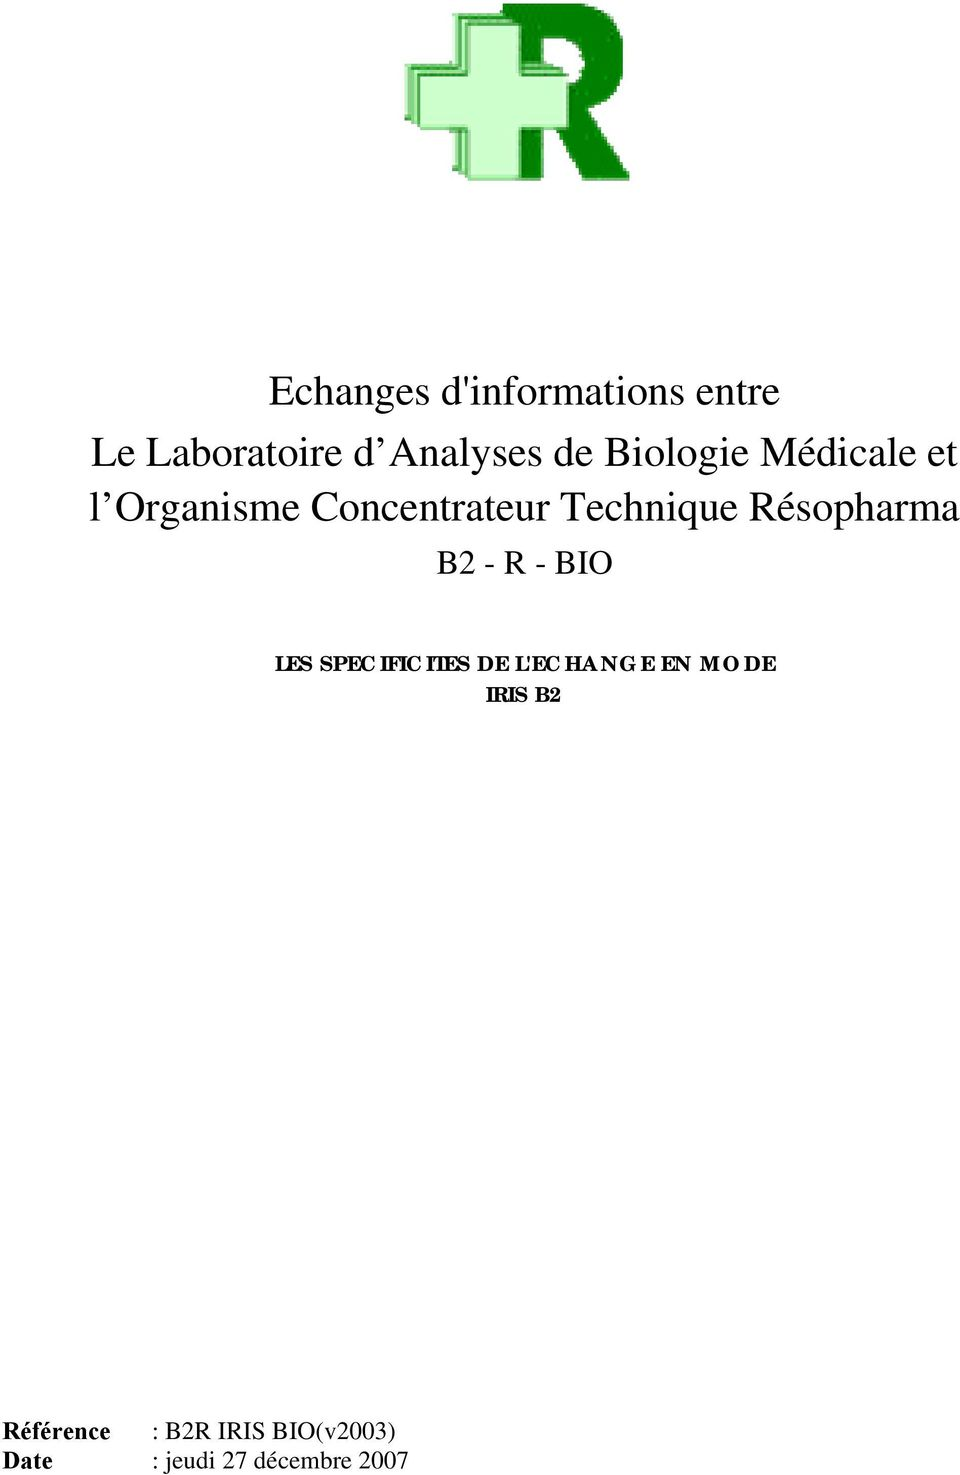 Résopharma B2 - R - BIO LES SPECIFICITES DE L'ECHANGE EN MODE